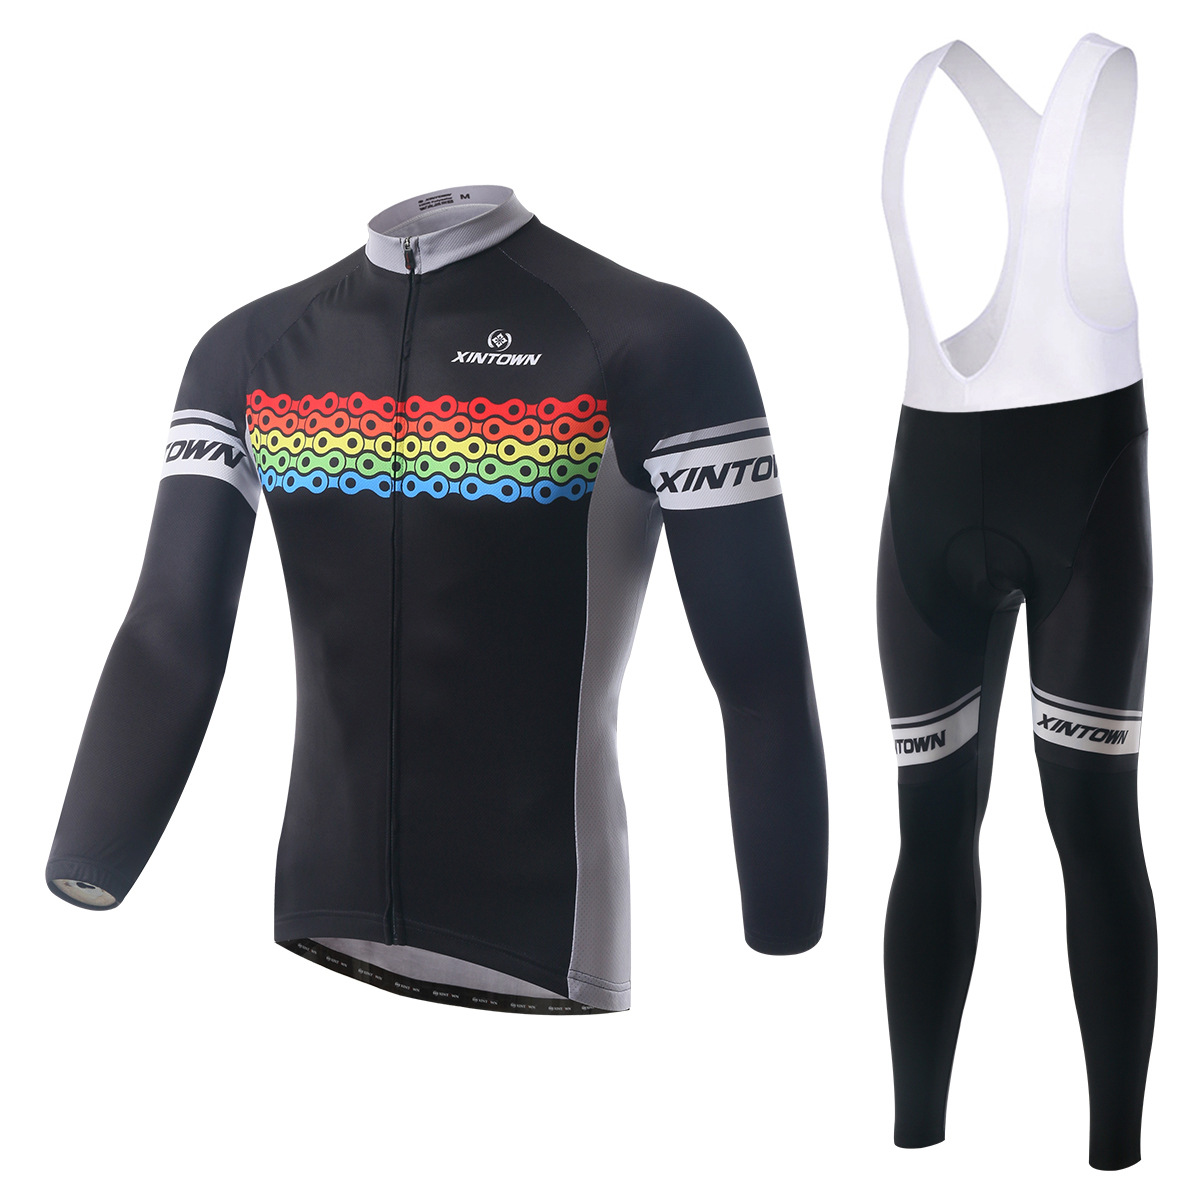 Cycling Set Long Sleeve Jersey and Bib Pants 3D Pad Pro Men Anti-sweat Bicycle Chain Pattern Ciclismo MTB Bike Suit Bicicleta teleyi team cycling outfits mens ropa ciclismo long sleeve jersey bib pants kits bicycle jacket trousers set red black